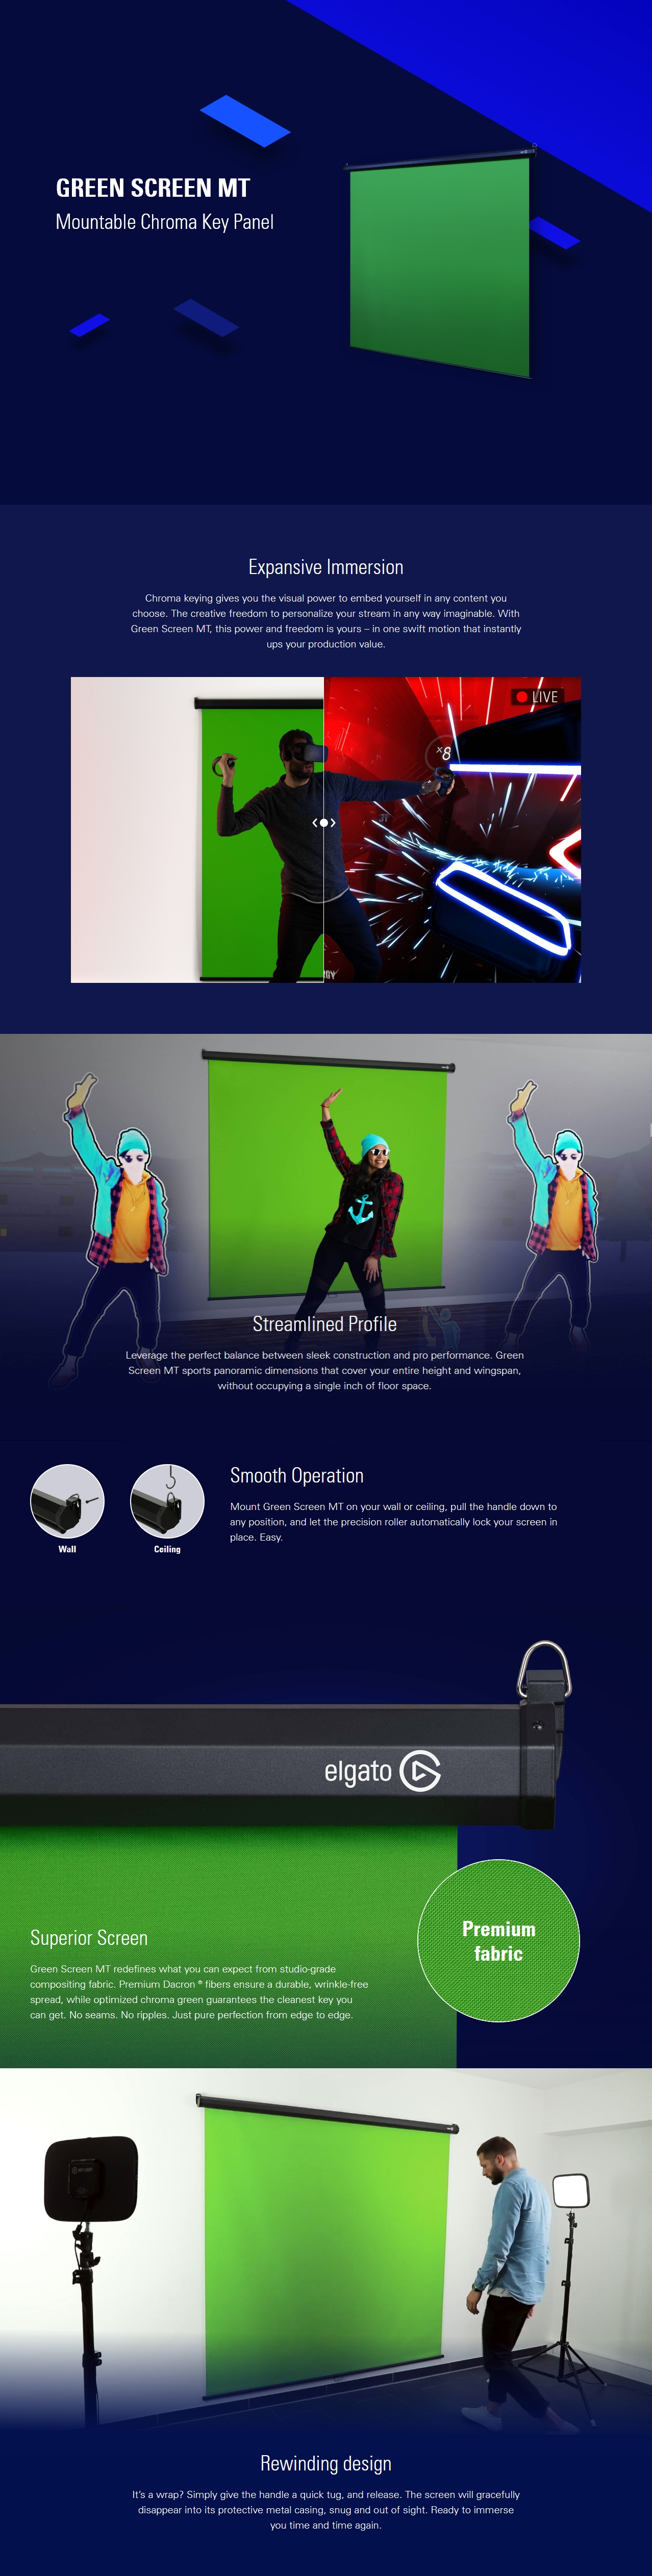 A large marketing image providing additional information about the product Elgato Green Screen MT - Additional alt info not provided